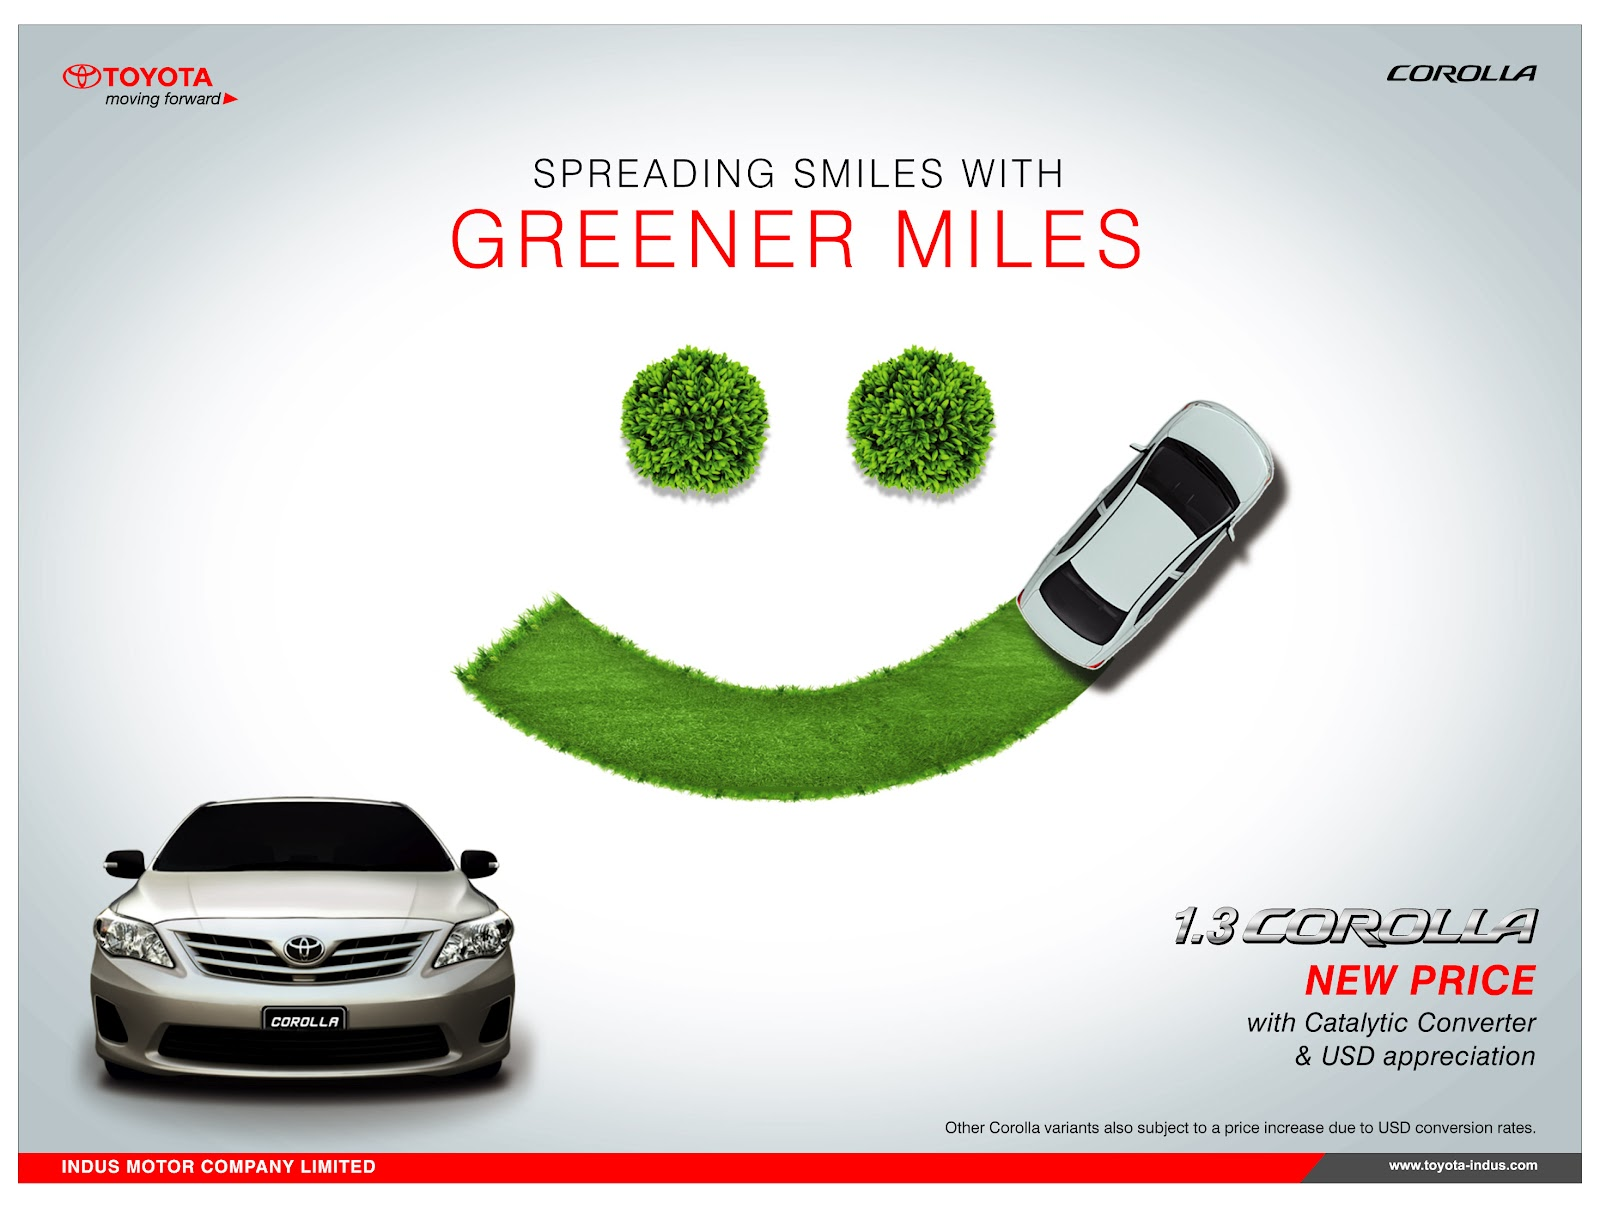 marketing environment toyota In a 2005 article in ethics & the environment, sociologist anne marie todd  one  benefit of green marketing is that unilever, coke and toyota.